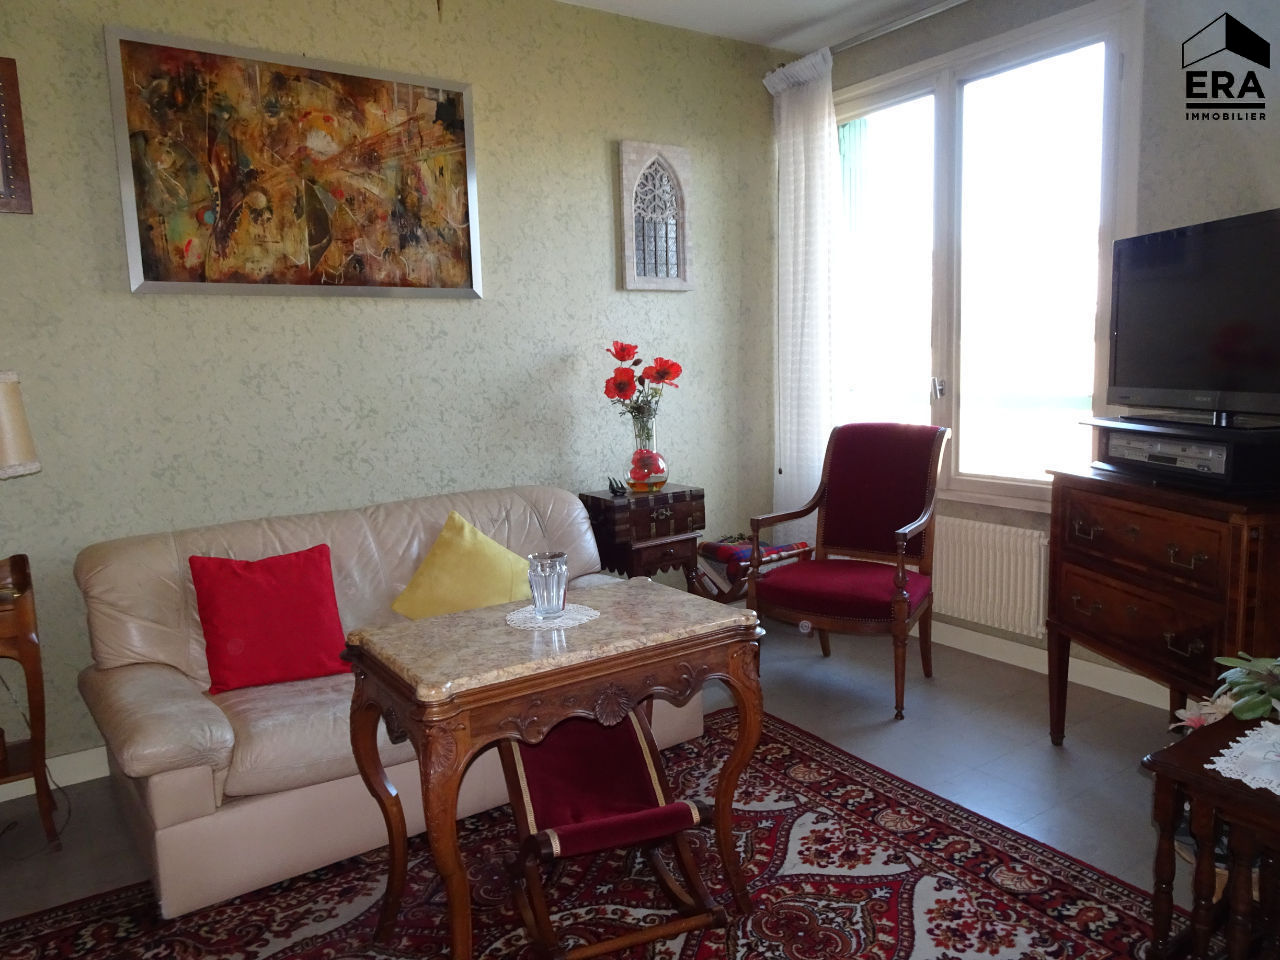 A VENDRE BOURG EN BRESSE GRAND APPARTEMENT DE 4 CHAMBRES ASCENSEUR ,GARAGE...